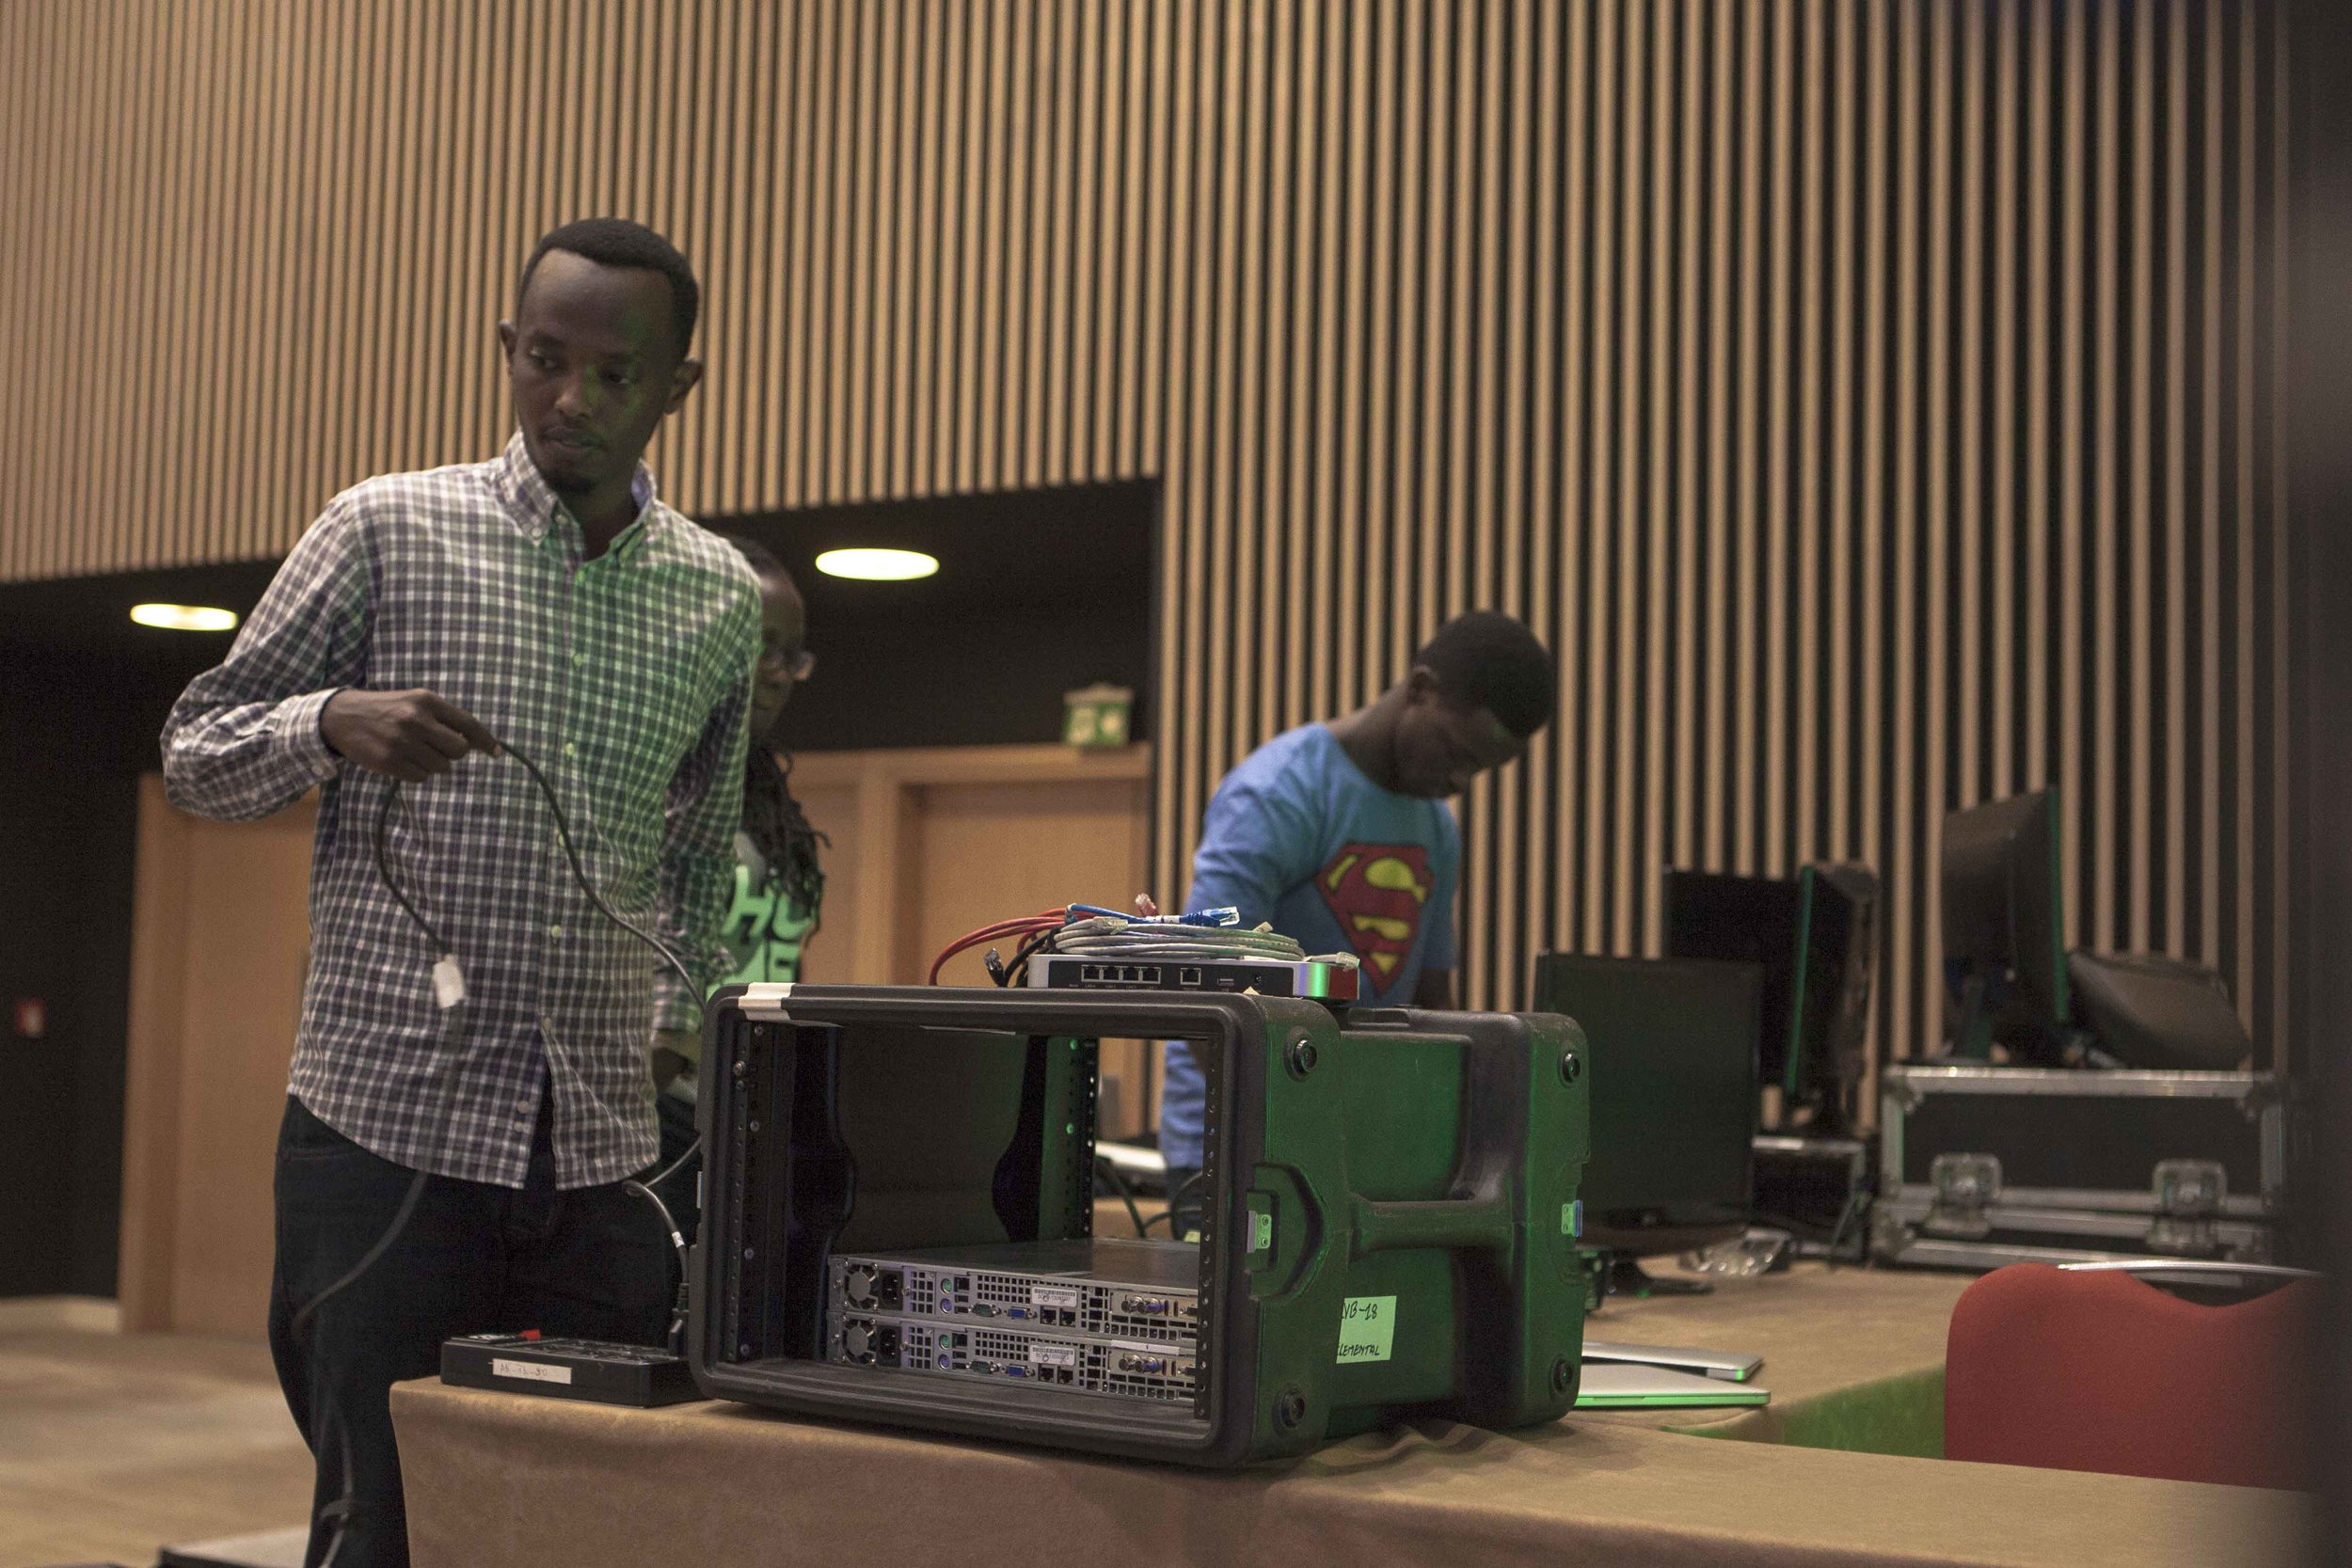 Alan and Bruce, two ADMA students, setting up the equipment that will be used for the live streaming